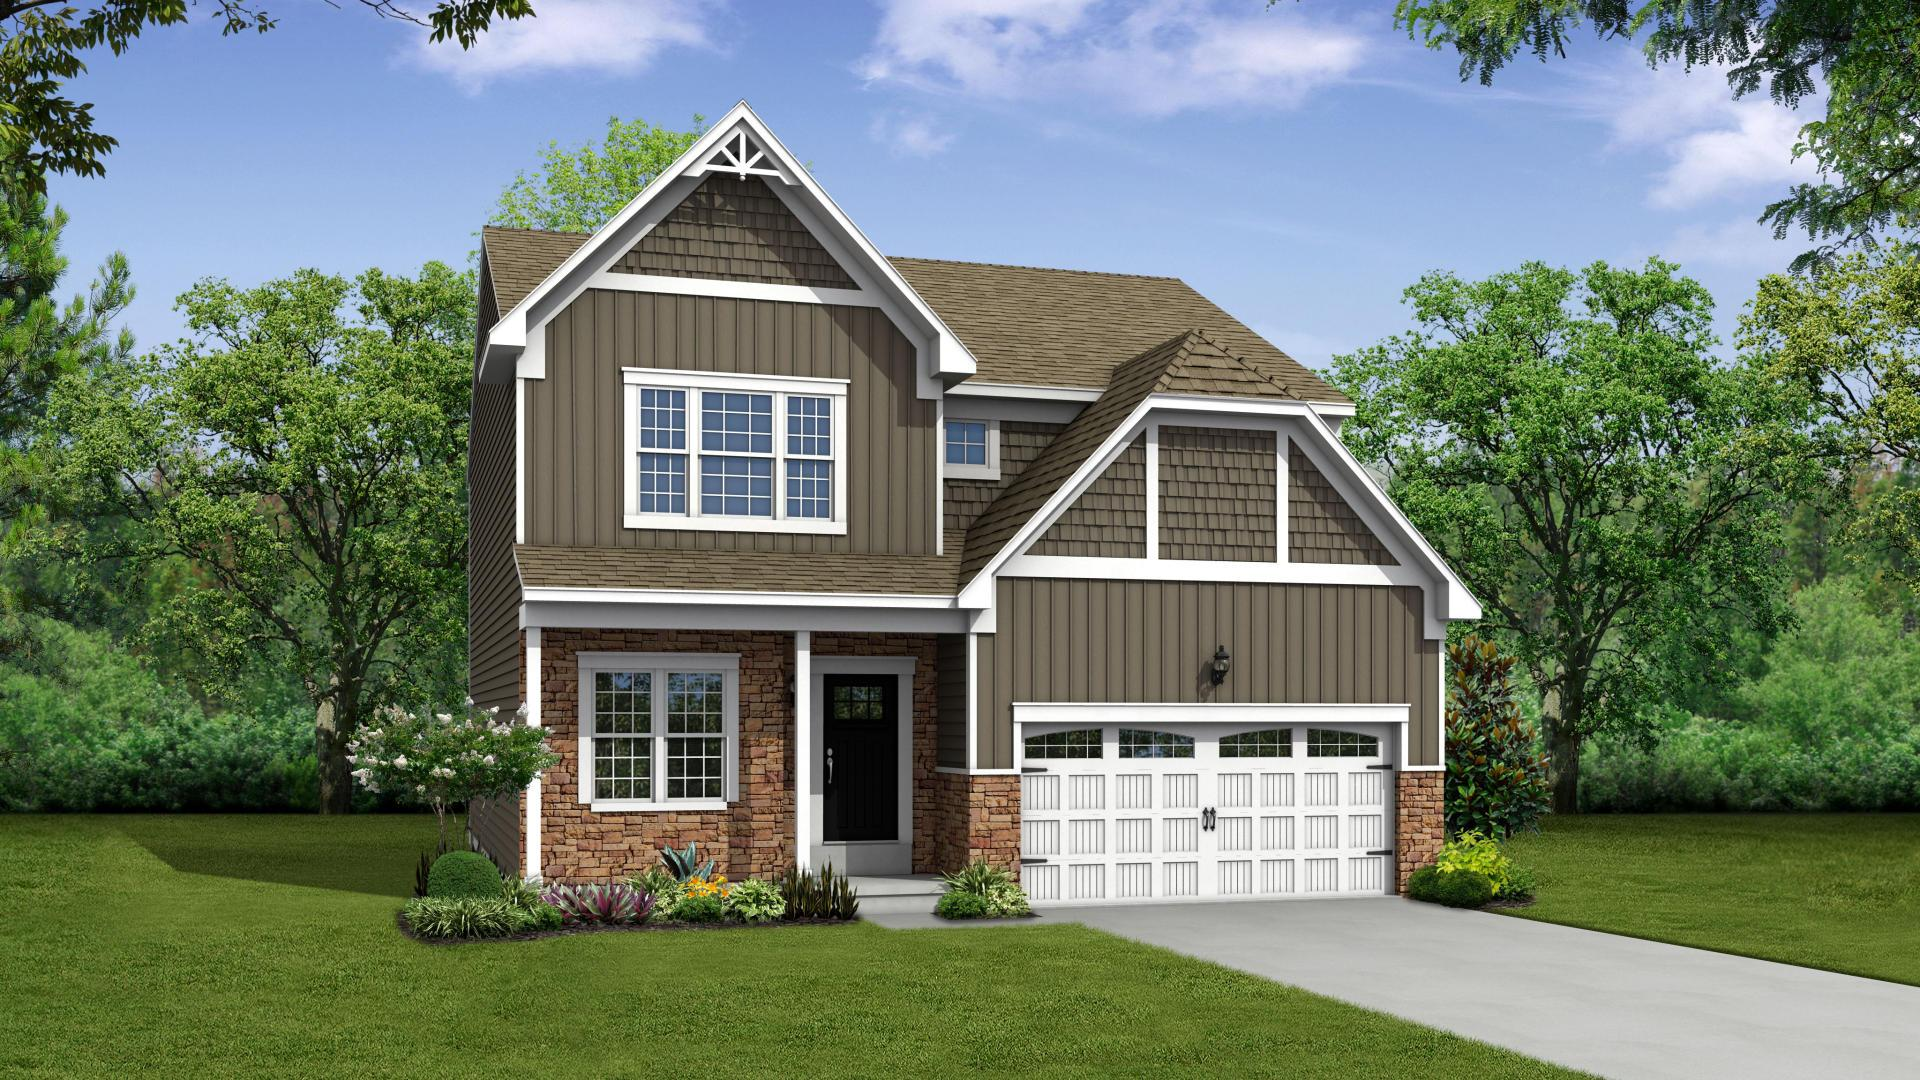 Exterior:Elevation: A Opt New England Stone Front, Full Porch, & Garage Door